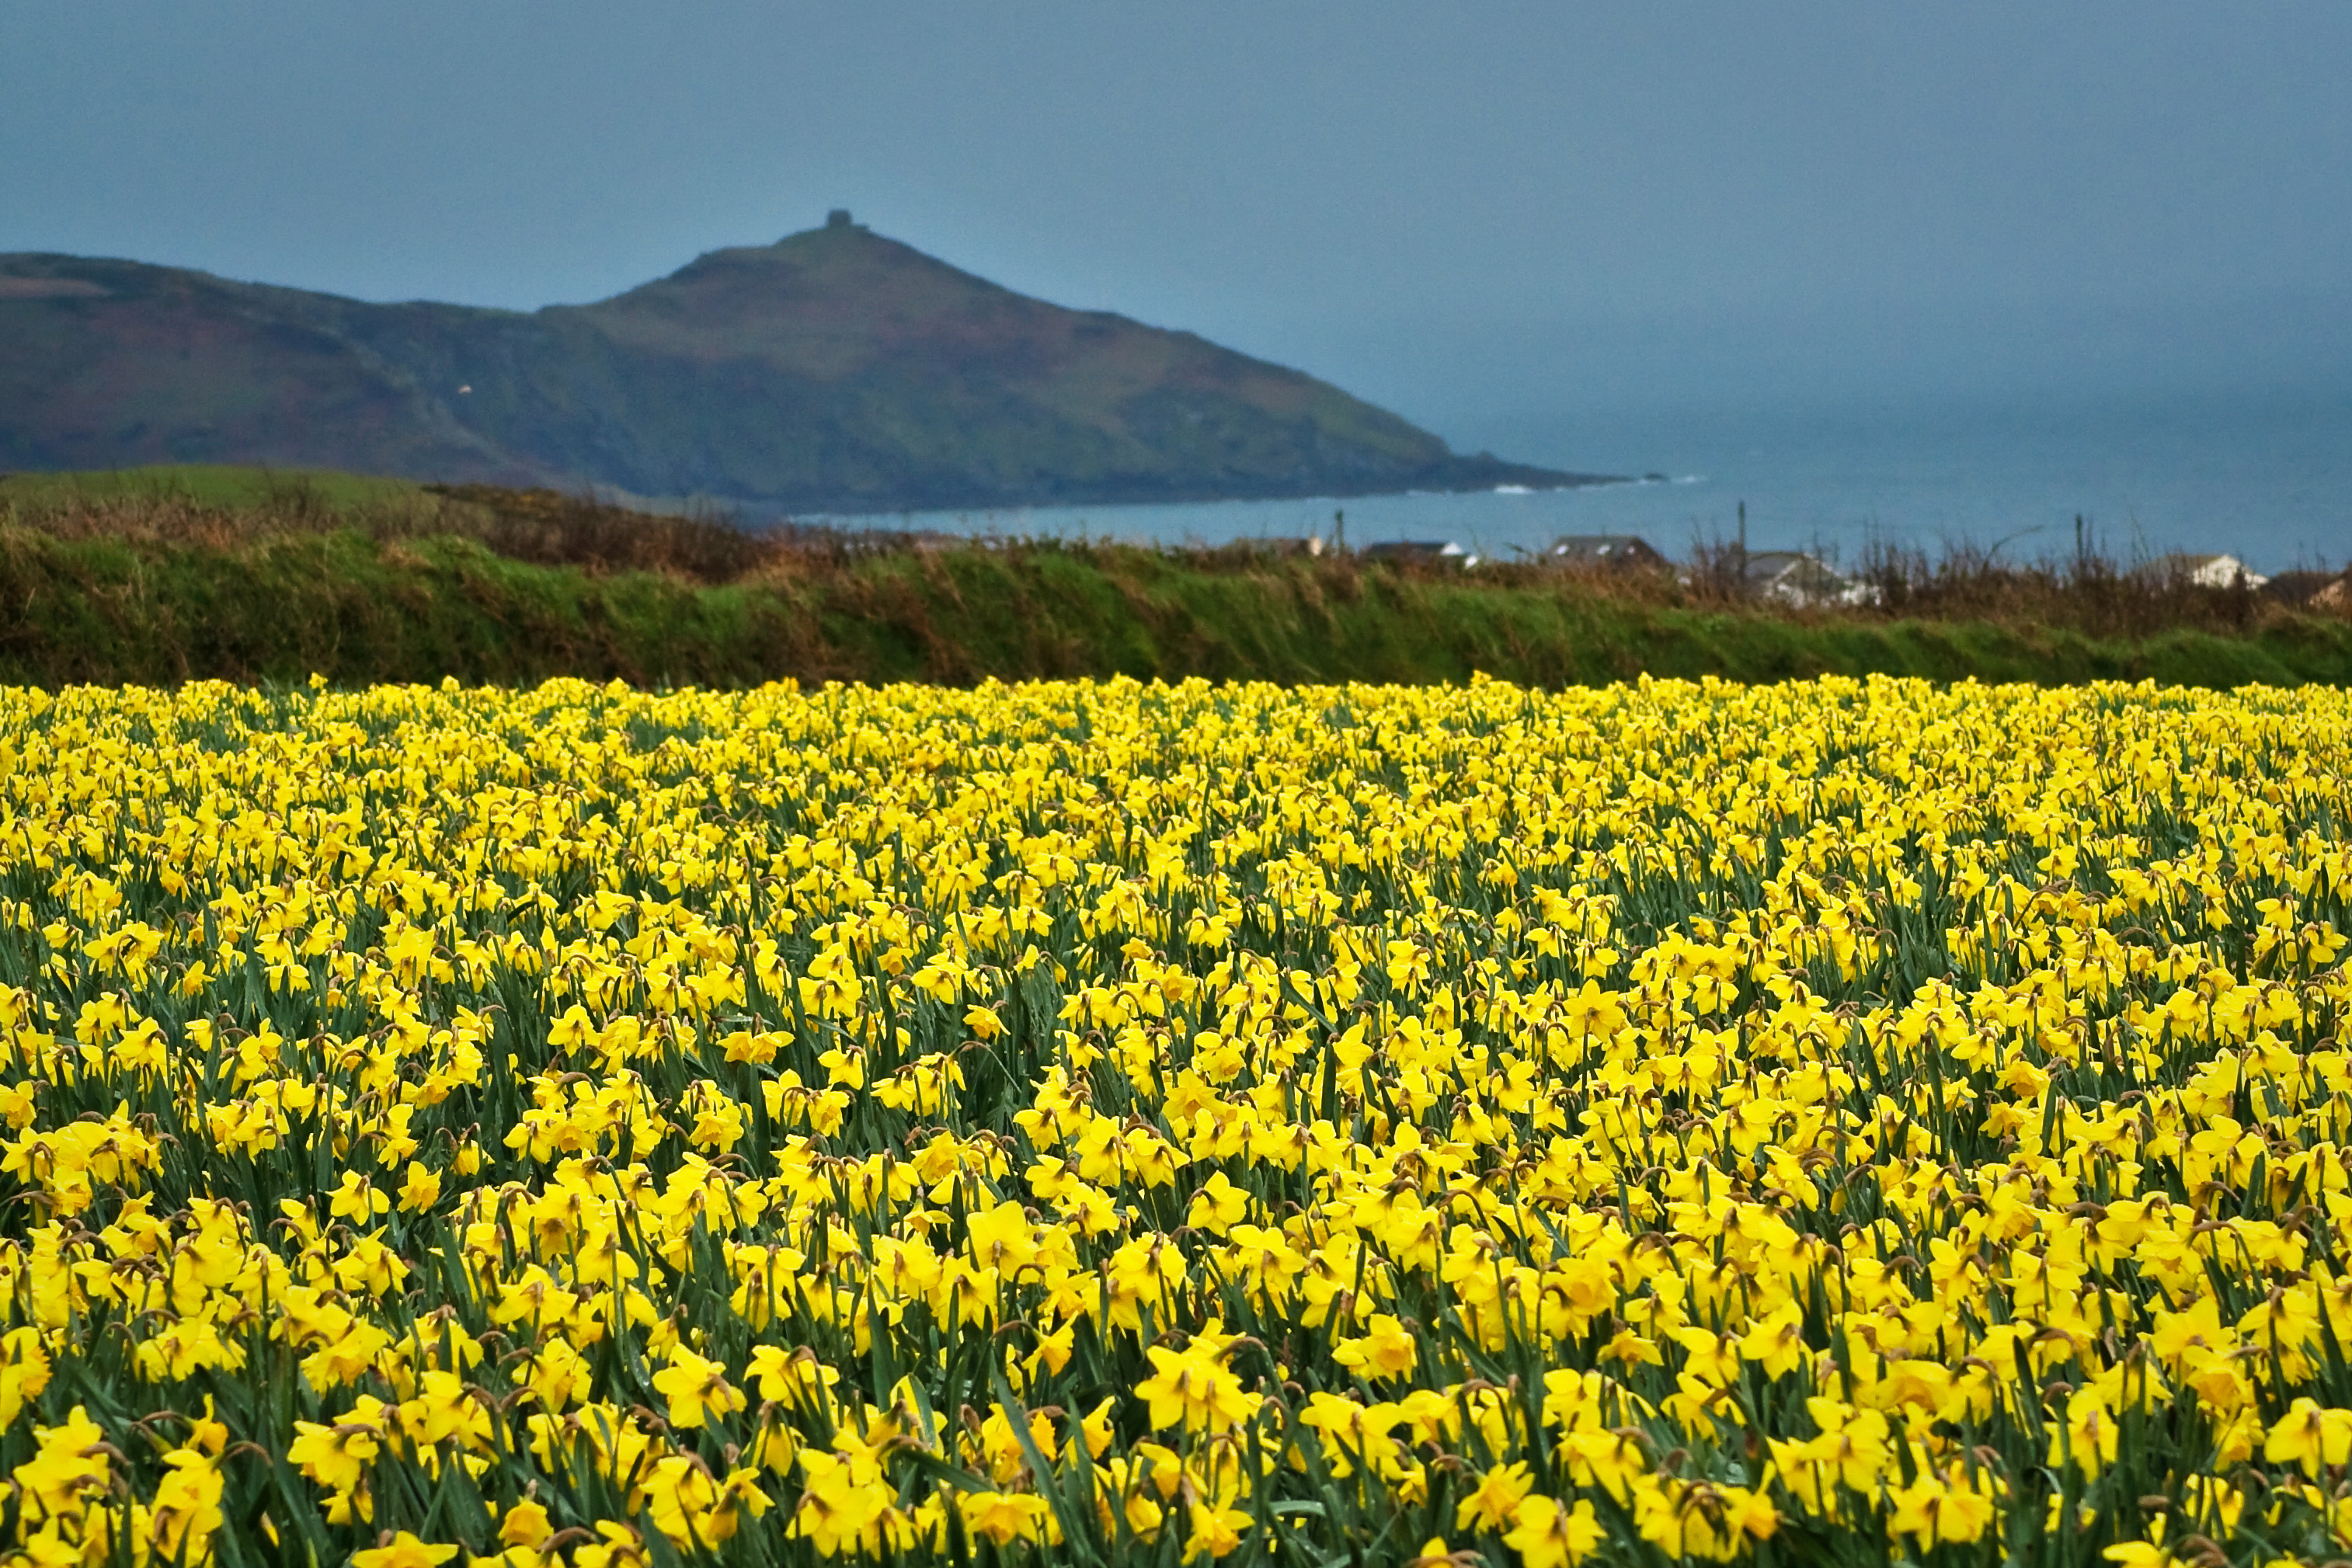 william wordsworth poem i wandered lonely as a cloud writework english daffodil field in south east cornwall